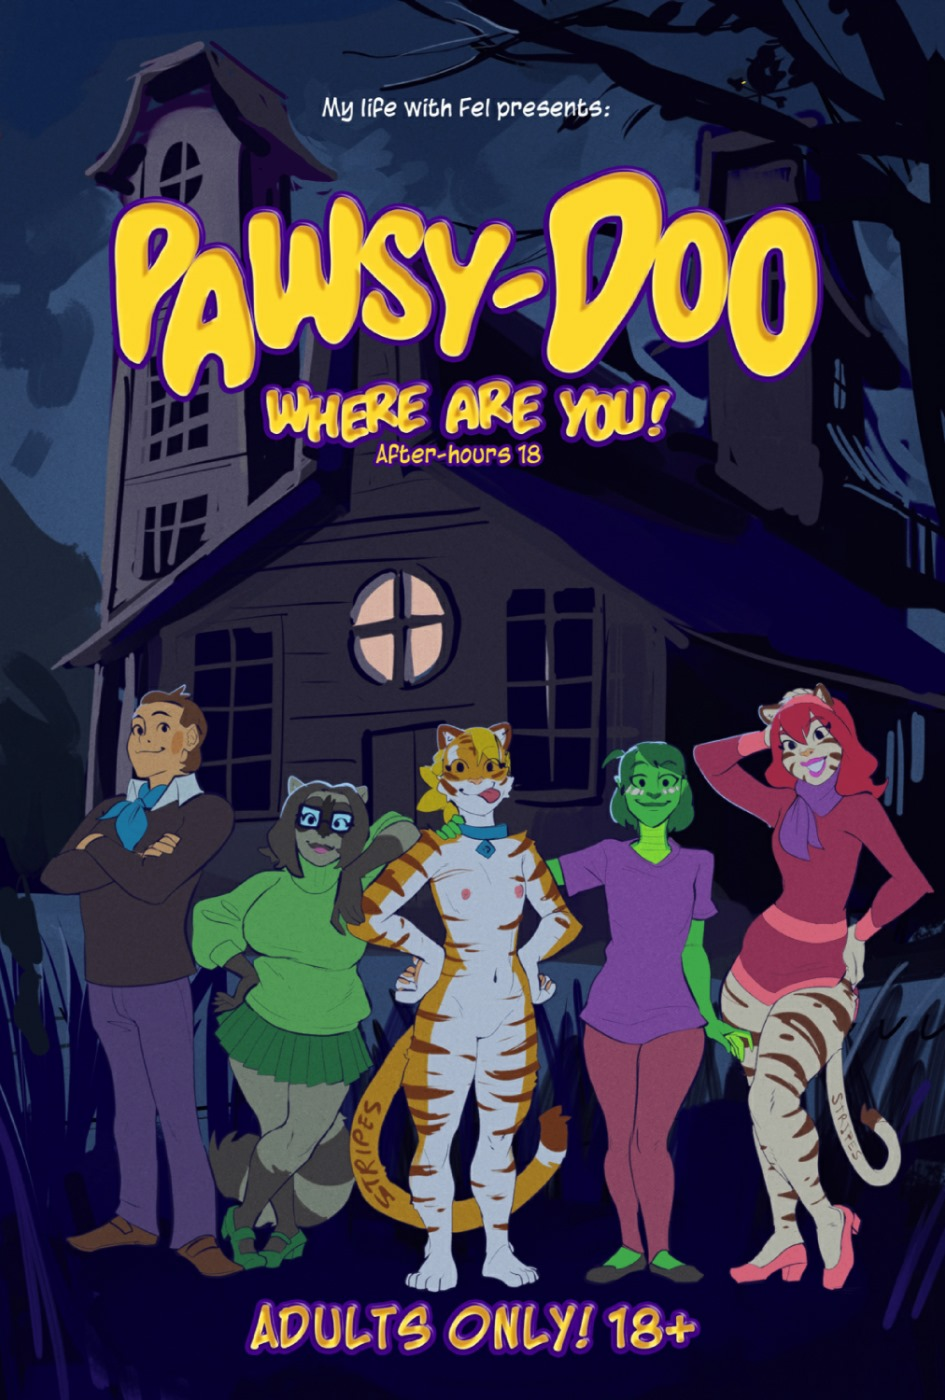 Pawsy-Doo Where are you!- Scooby Doo image 1